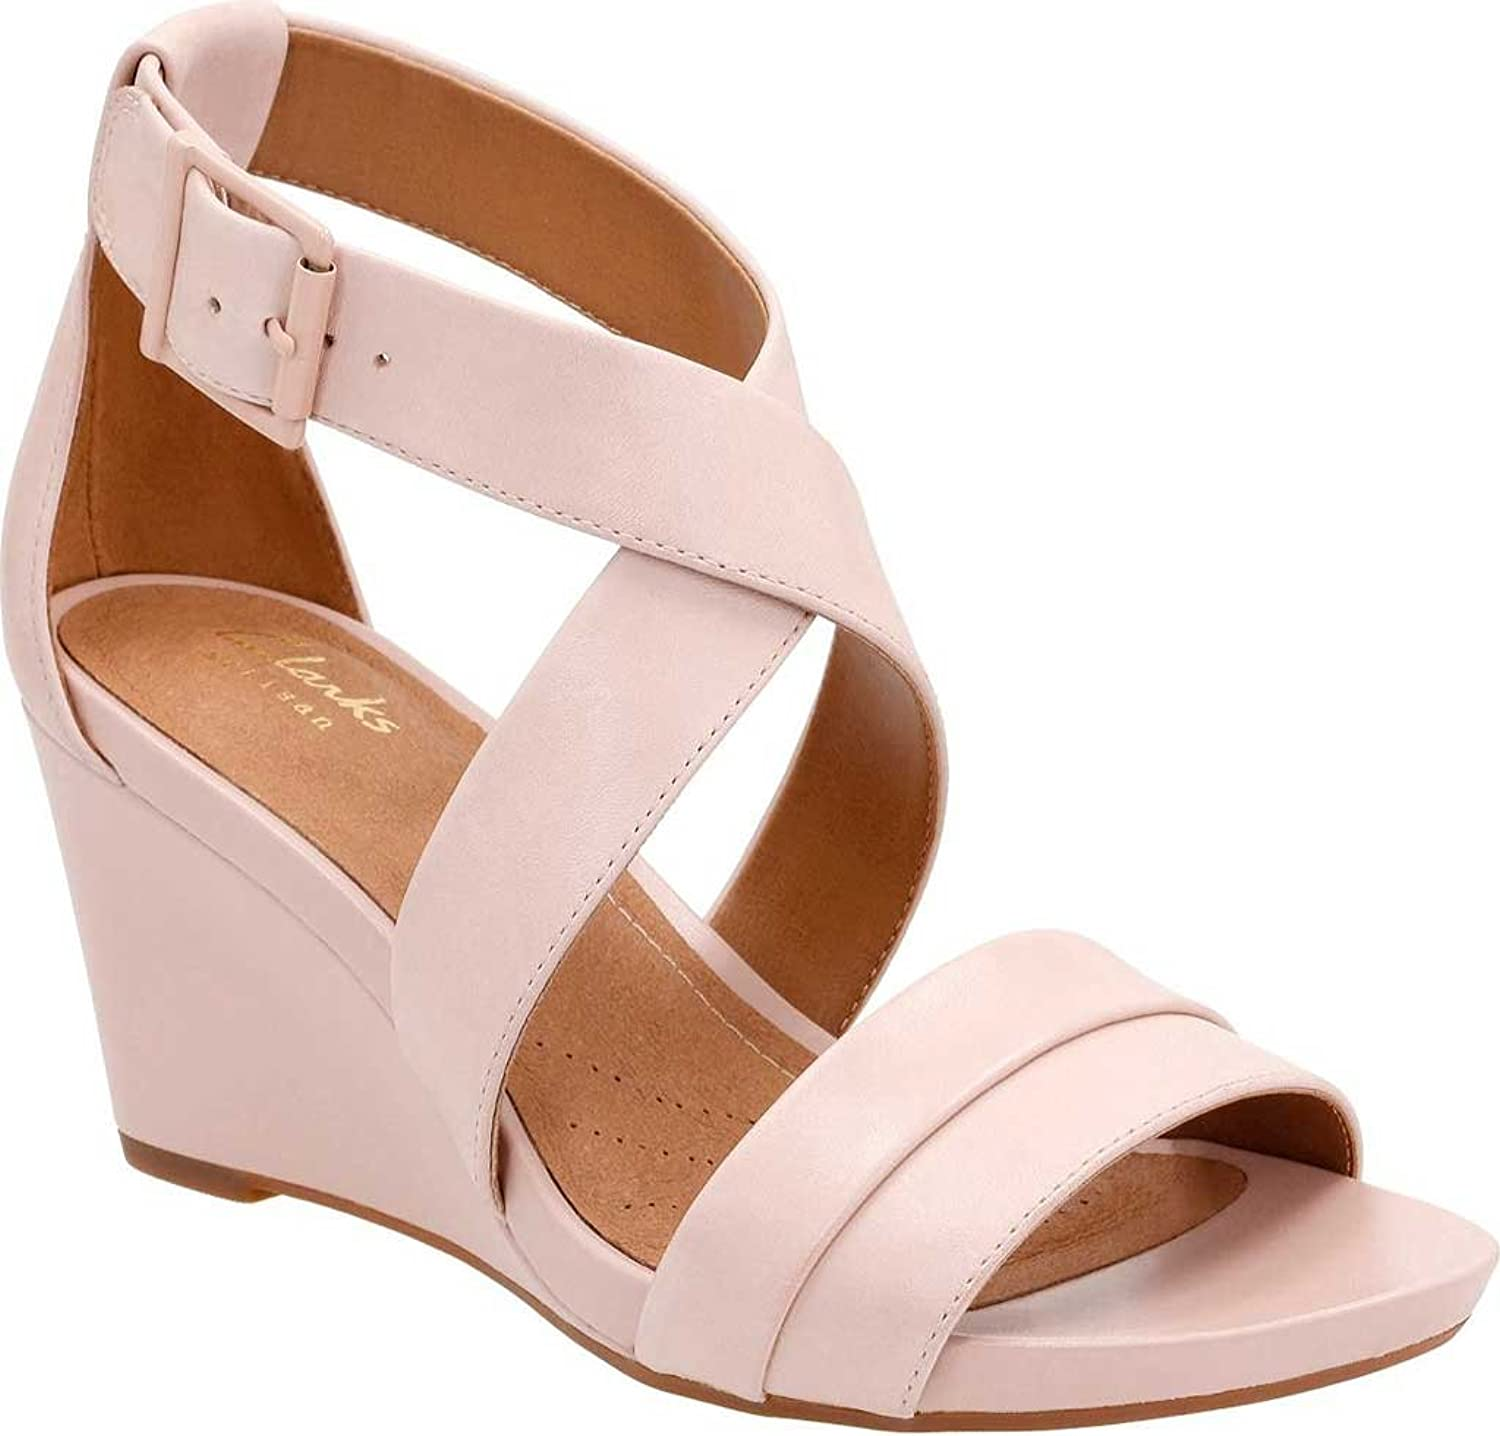 Clarks Womens Acina Leather Open Toe Casual Platform Sandals, Pink, Size 9.0